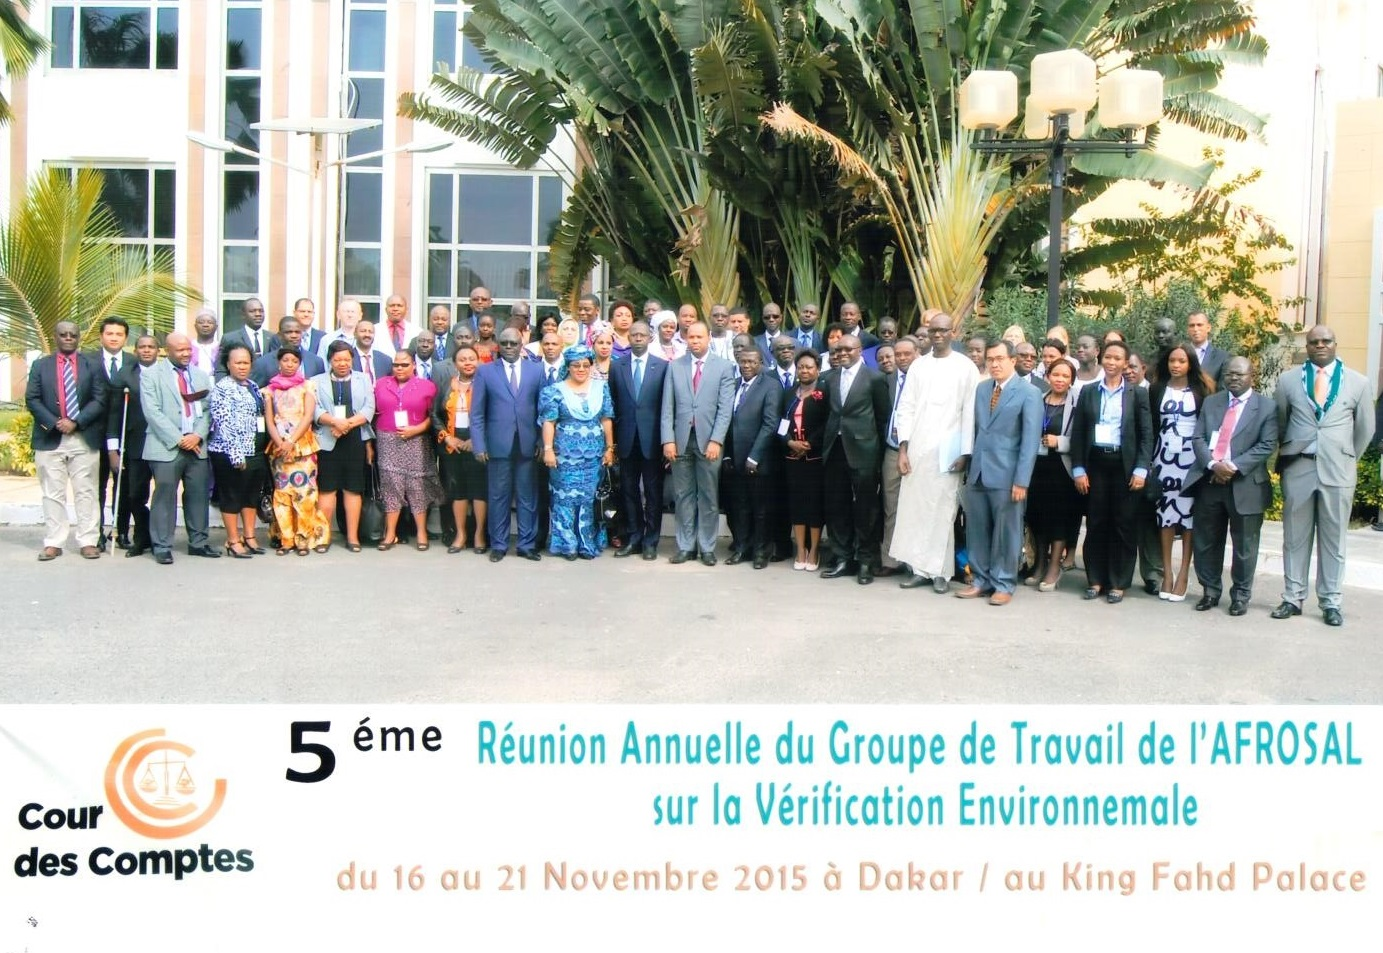 5th Annual Meeting of AFROSAI Working Group